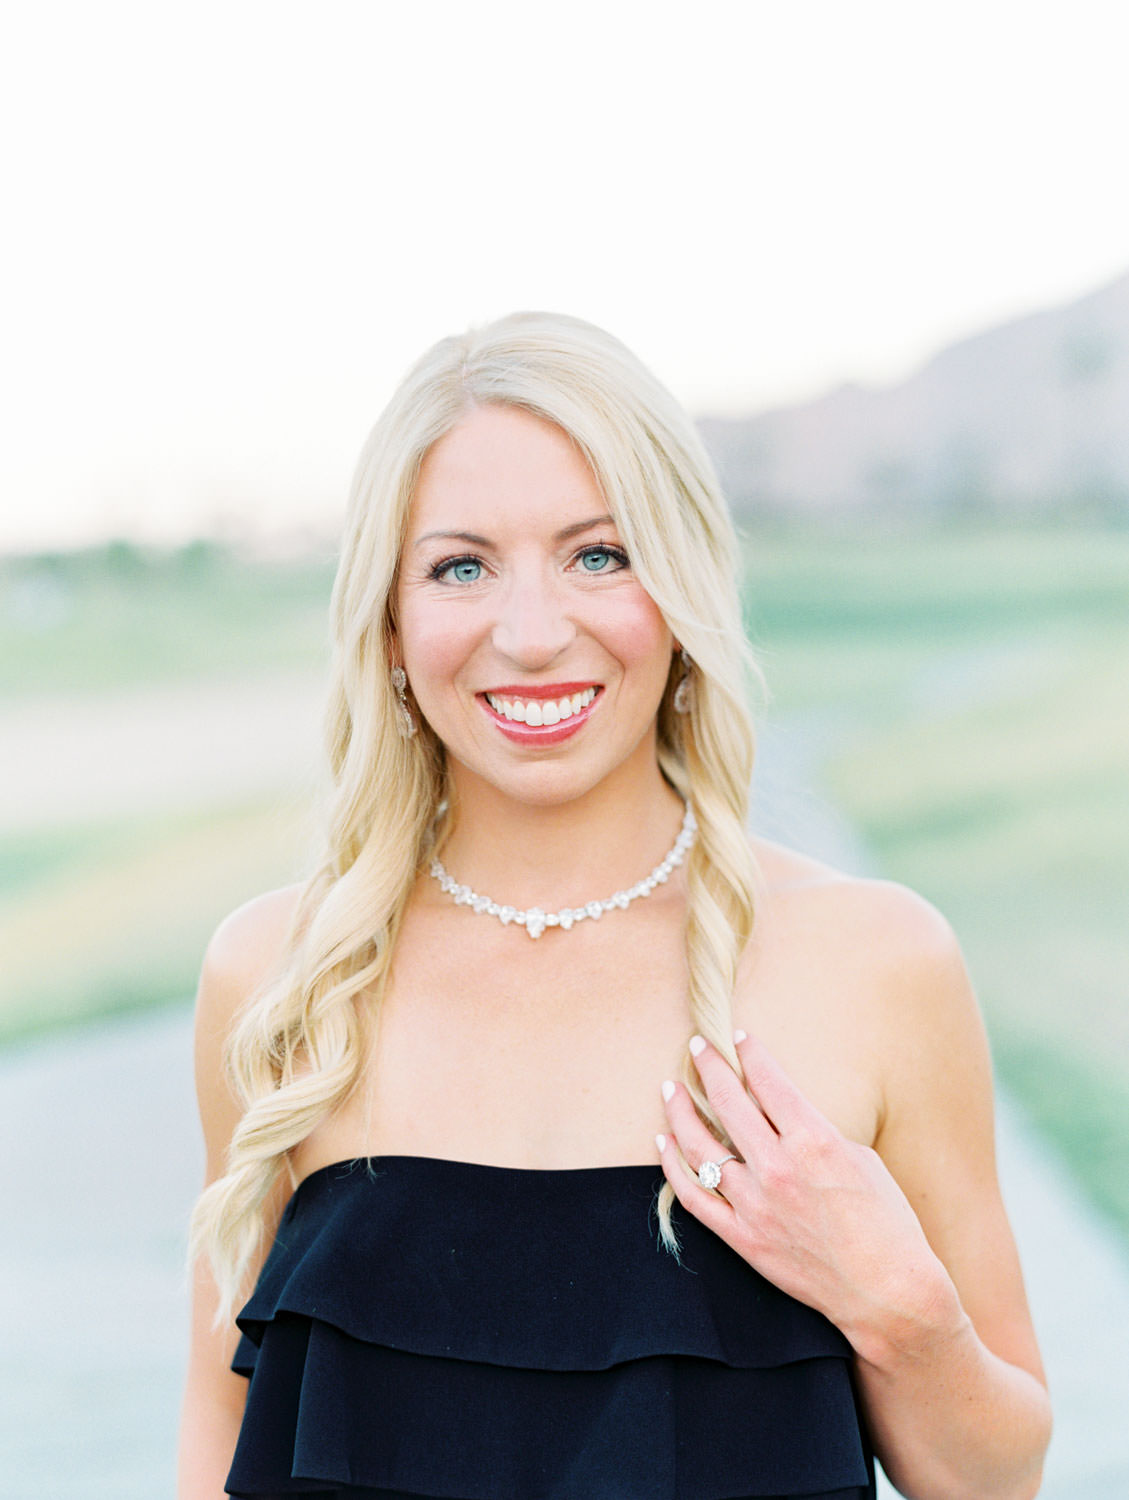 Bride in a strapless fitted black dress with hair curled and down. La Quinta Resort Engagement Photos on Film by Cavin Elizabeth Photography